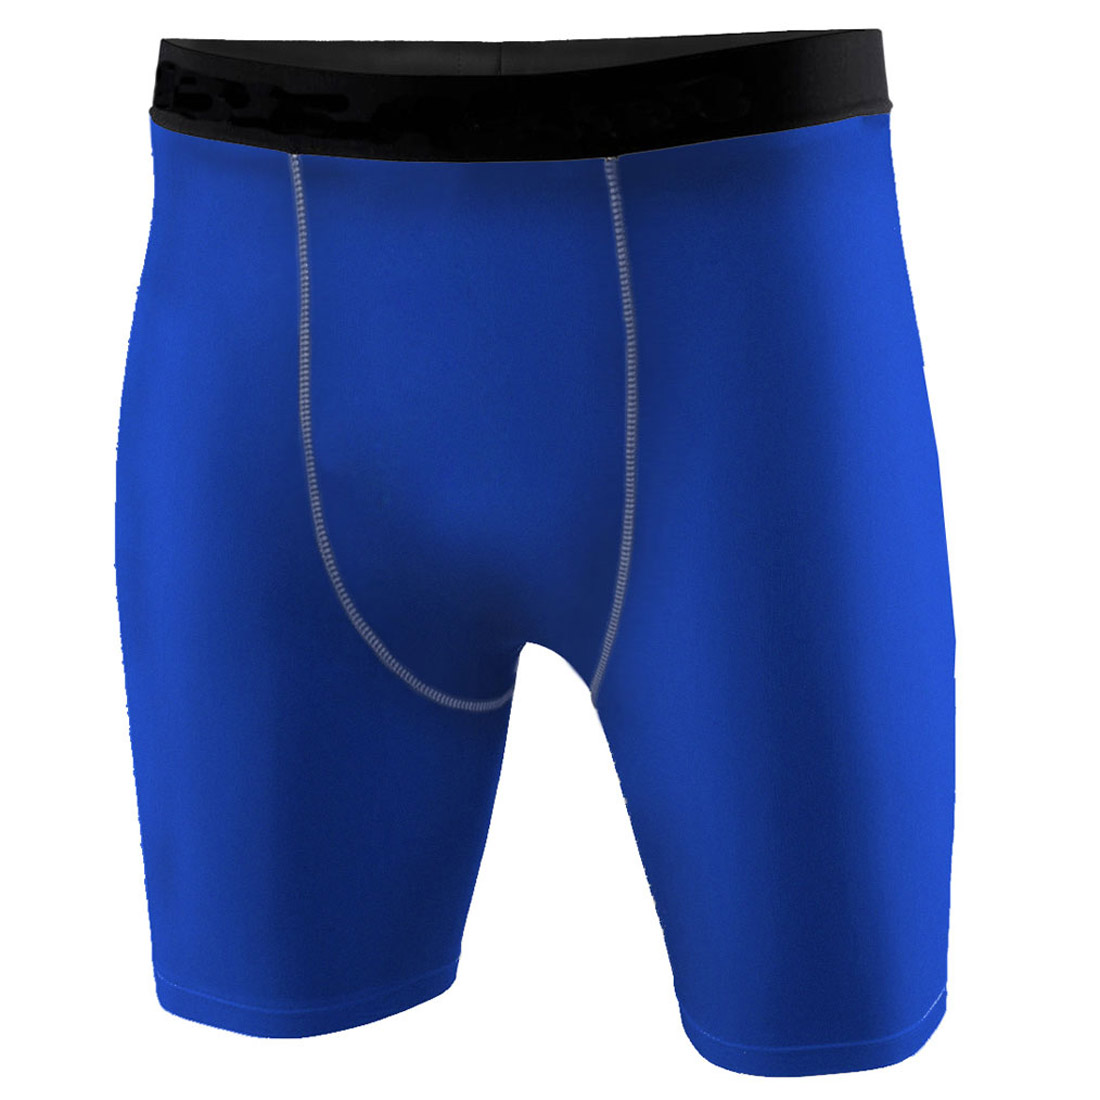 Women's compression shorts fortify muscles to help your performance—on the court, the track, the field or the yoga mat. Think about these factors when selecting compression gear for your workout: Lined gussets enhance both comfort and range of motion.